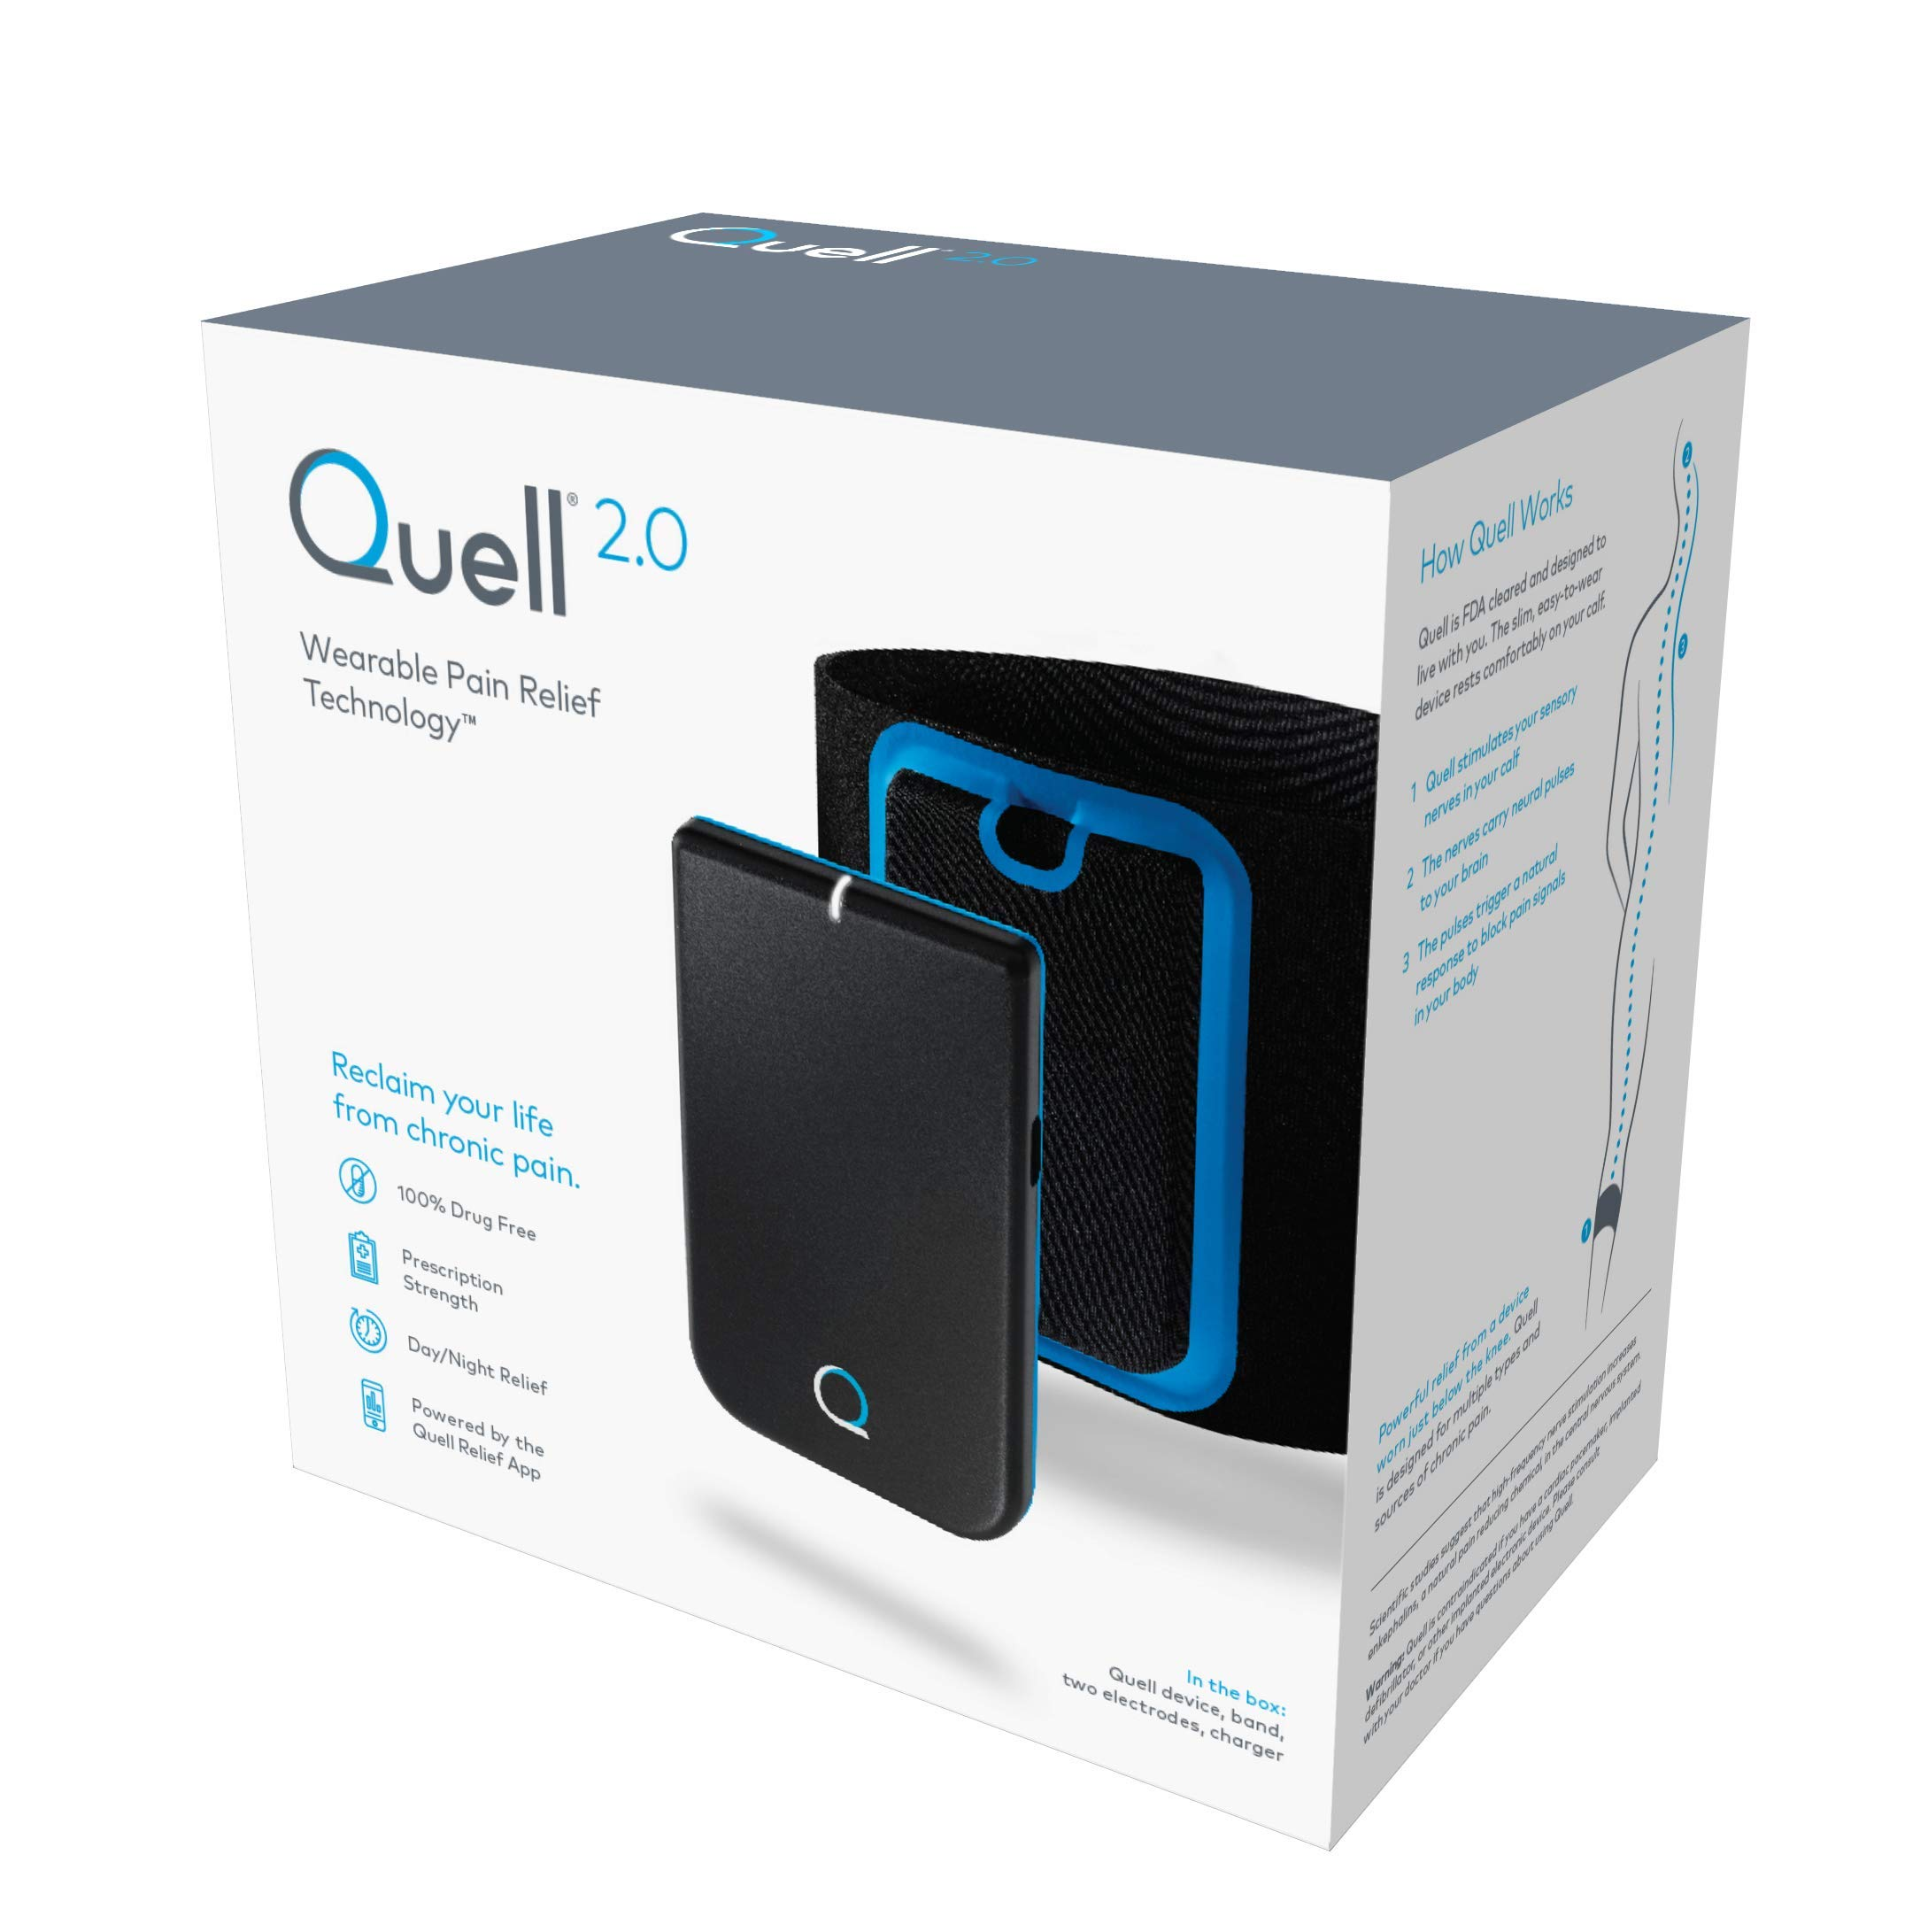 Quell 2.0 Wearable Pain Relief Technology by Quell